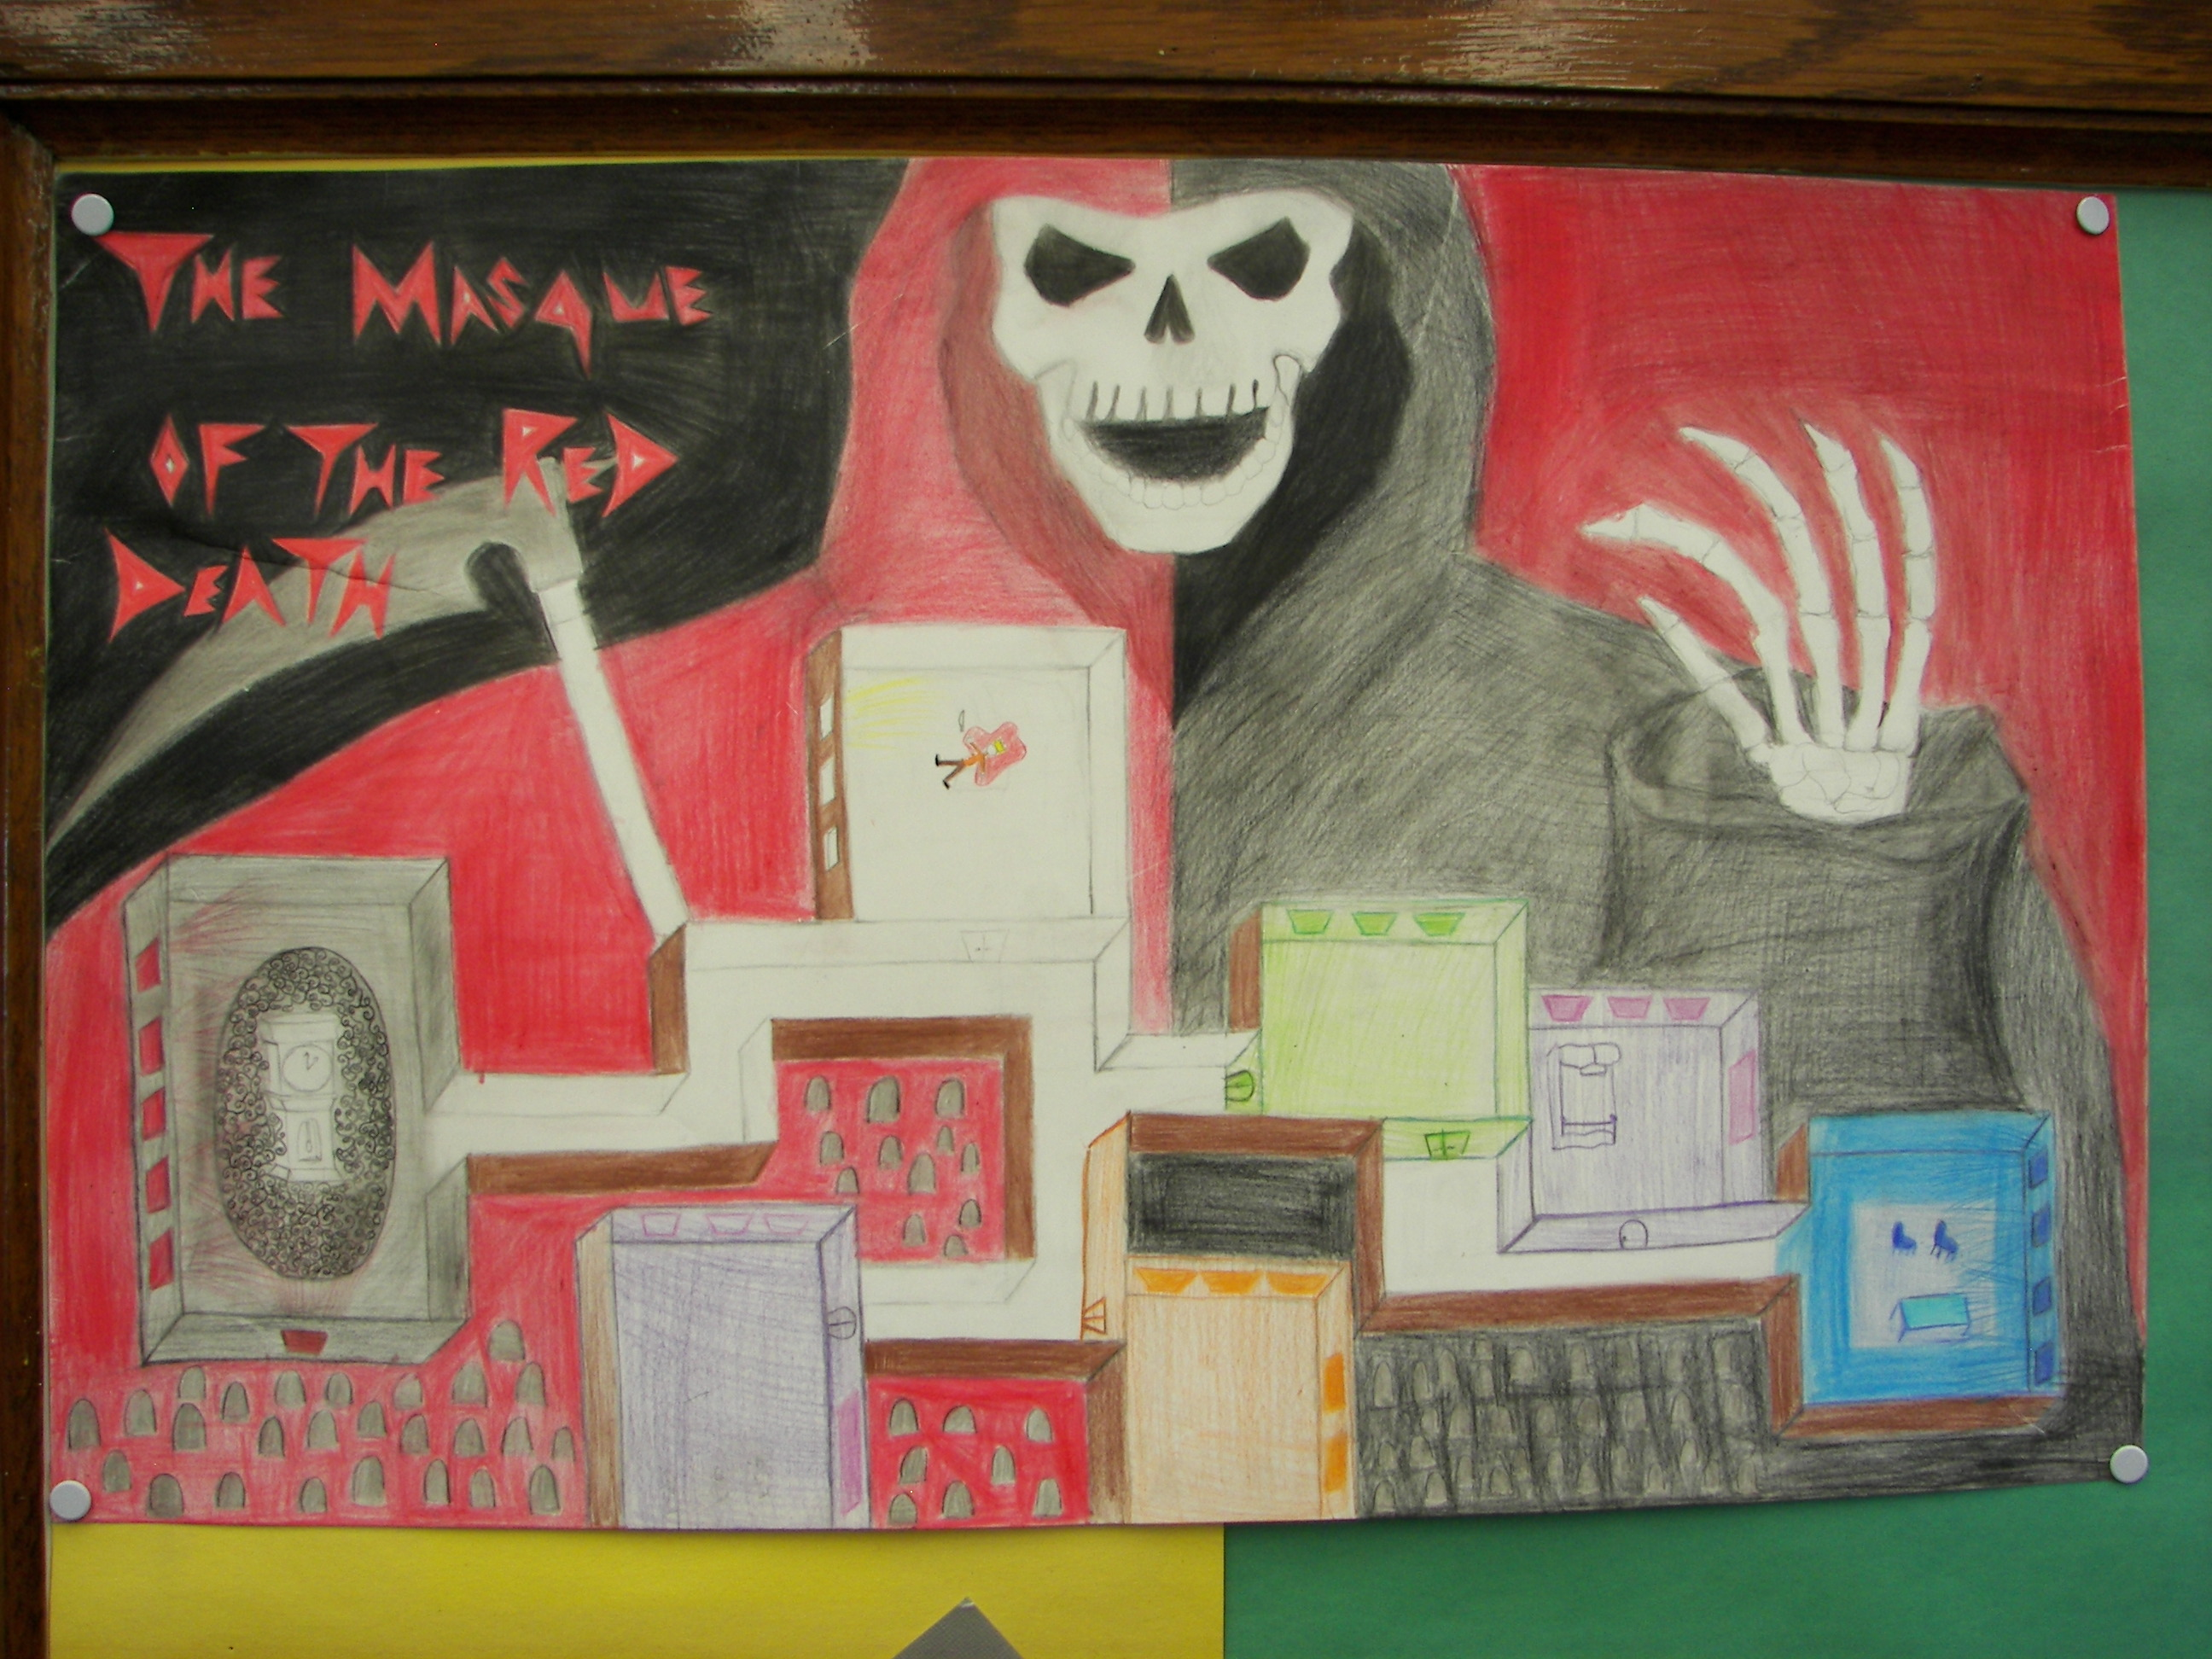 Gallery The Masque Of The Red Student Creative